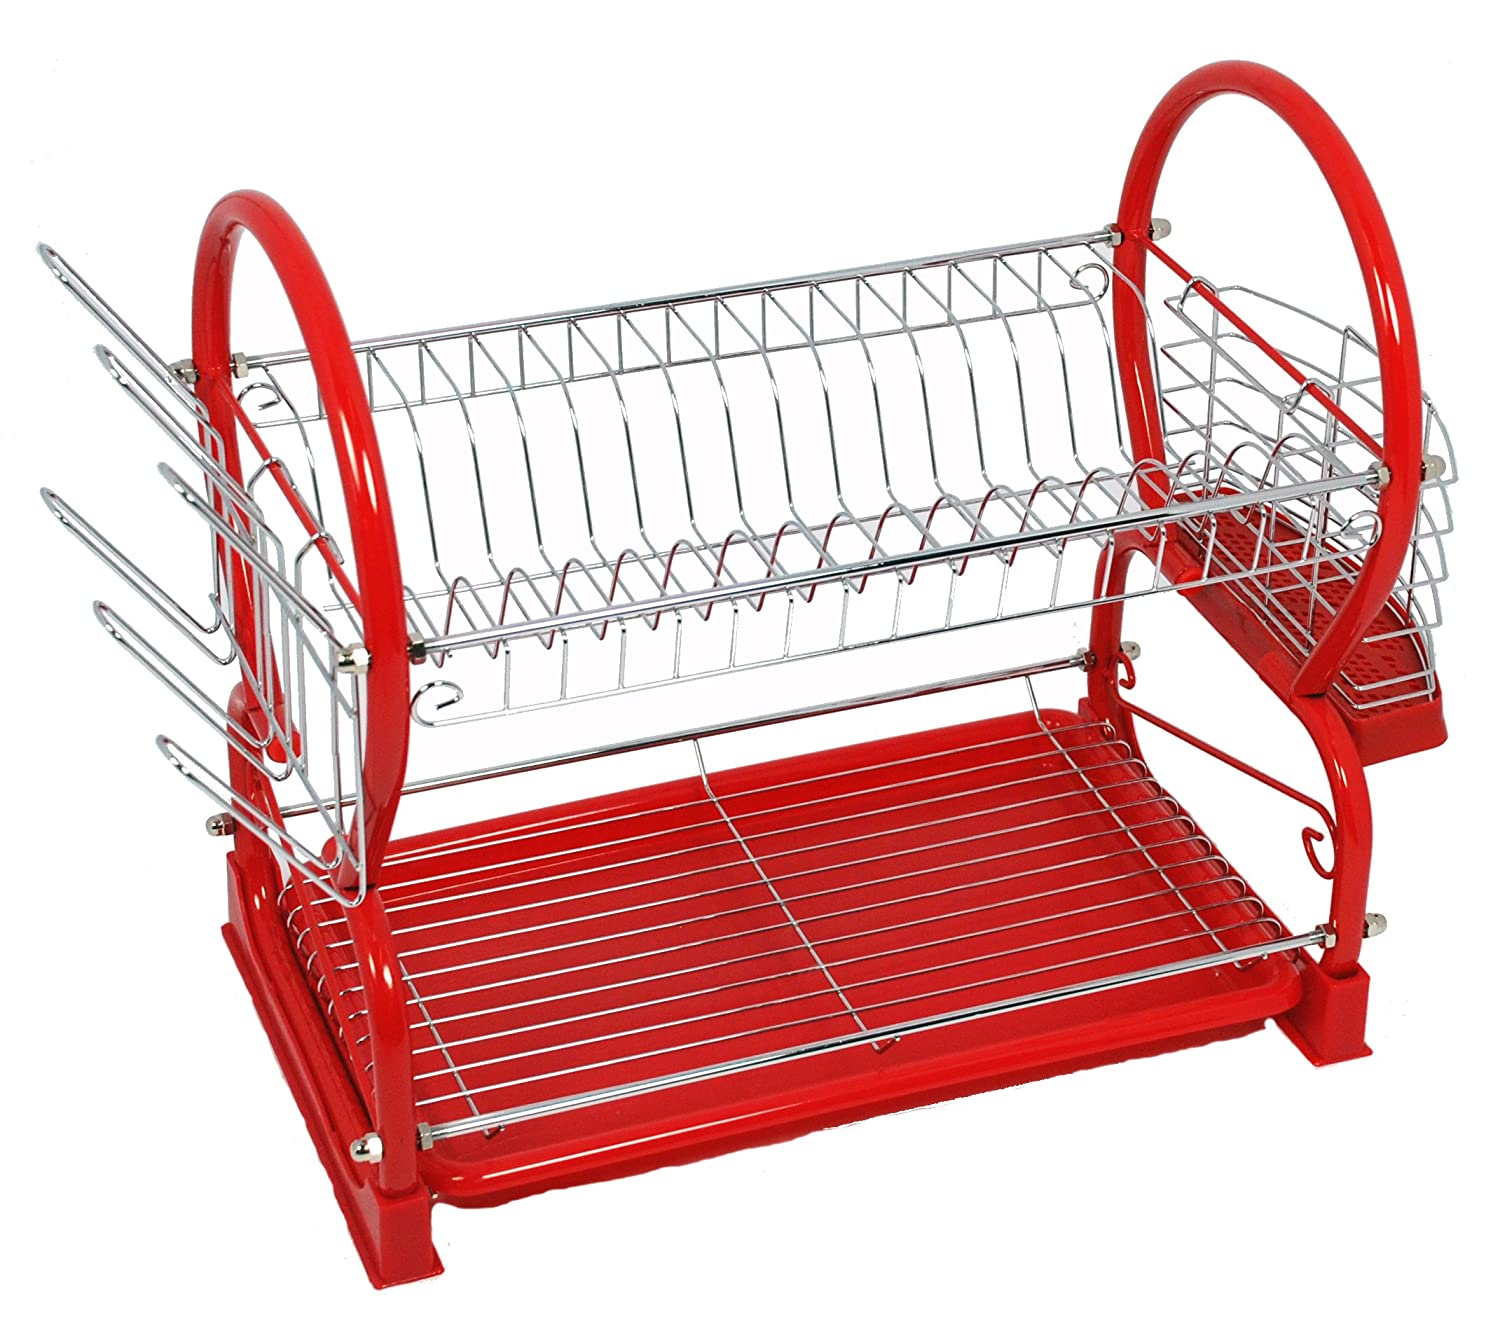 Buckingham 56 cm Metal Deluxe 2-Tier Chrome Plated Dish Drainer Cup Glasses Crockery Cutlery Utensil Drainer with Drip Removable Tray, Red B & I International 30015